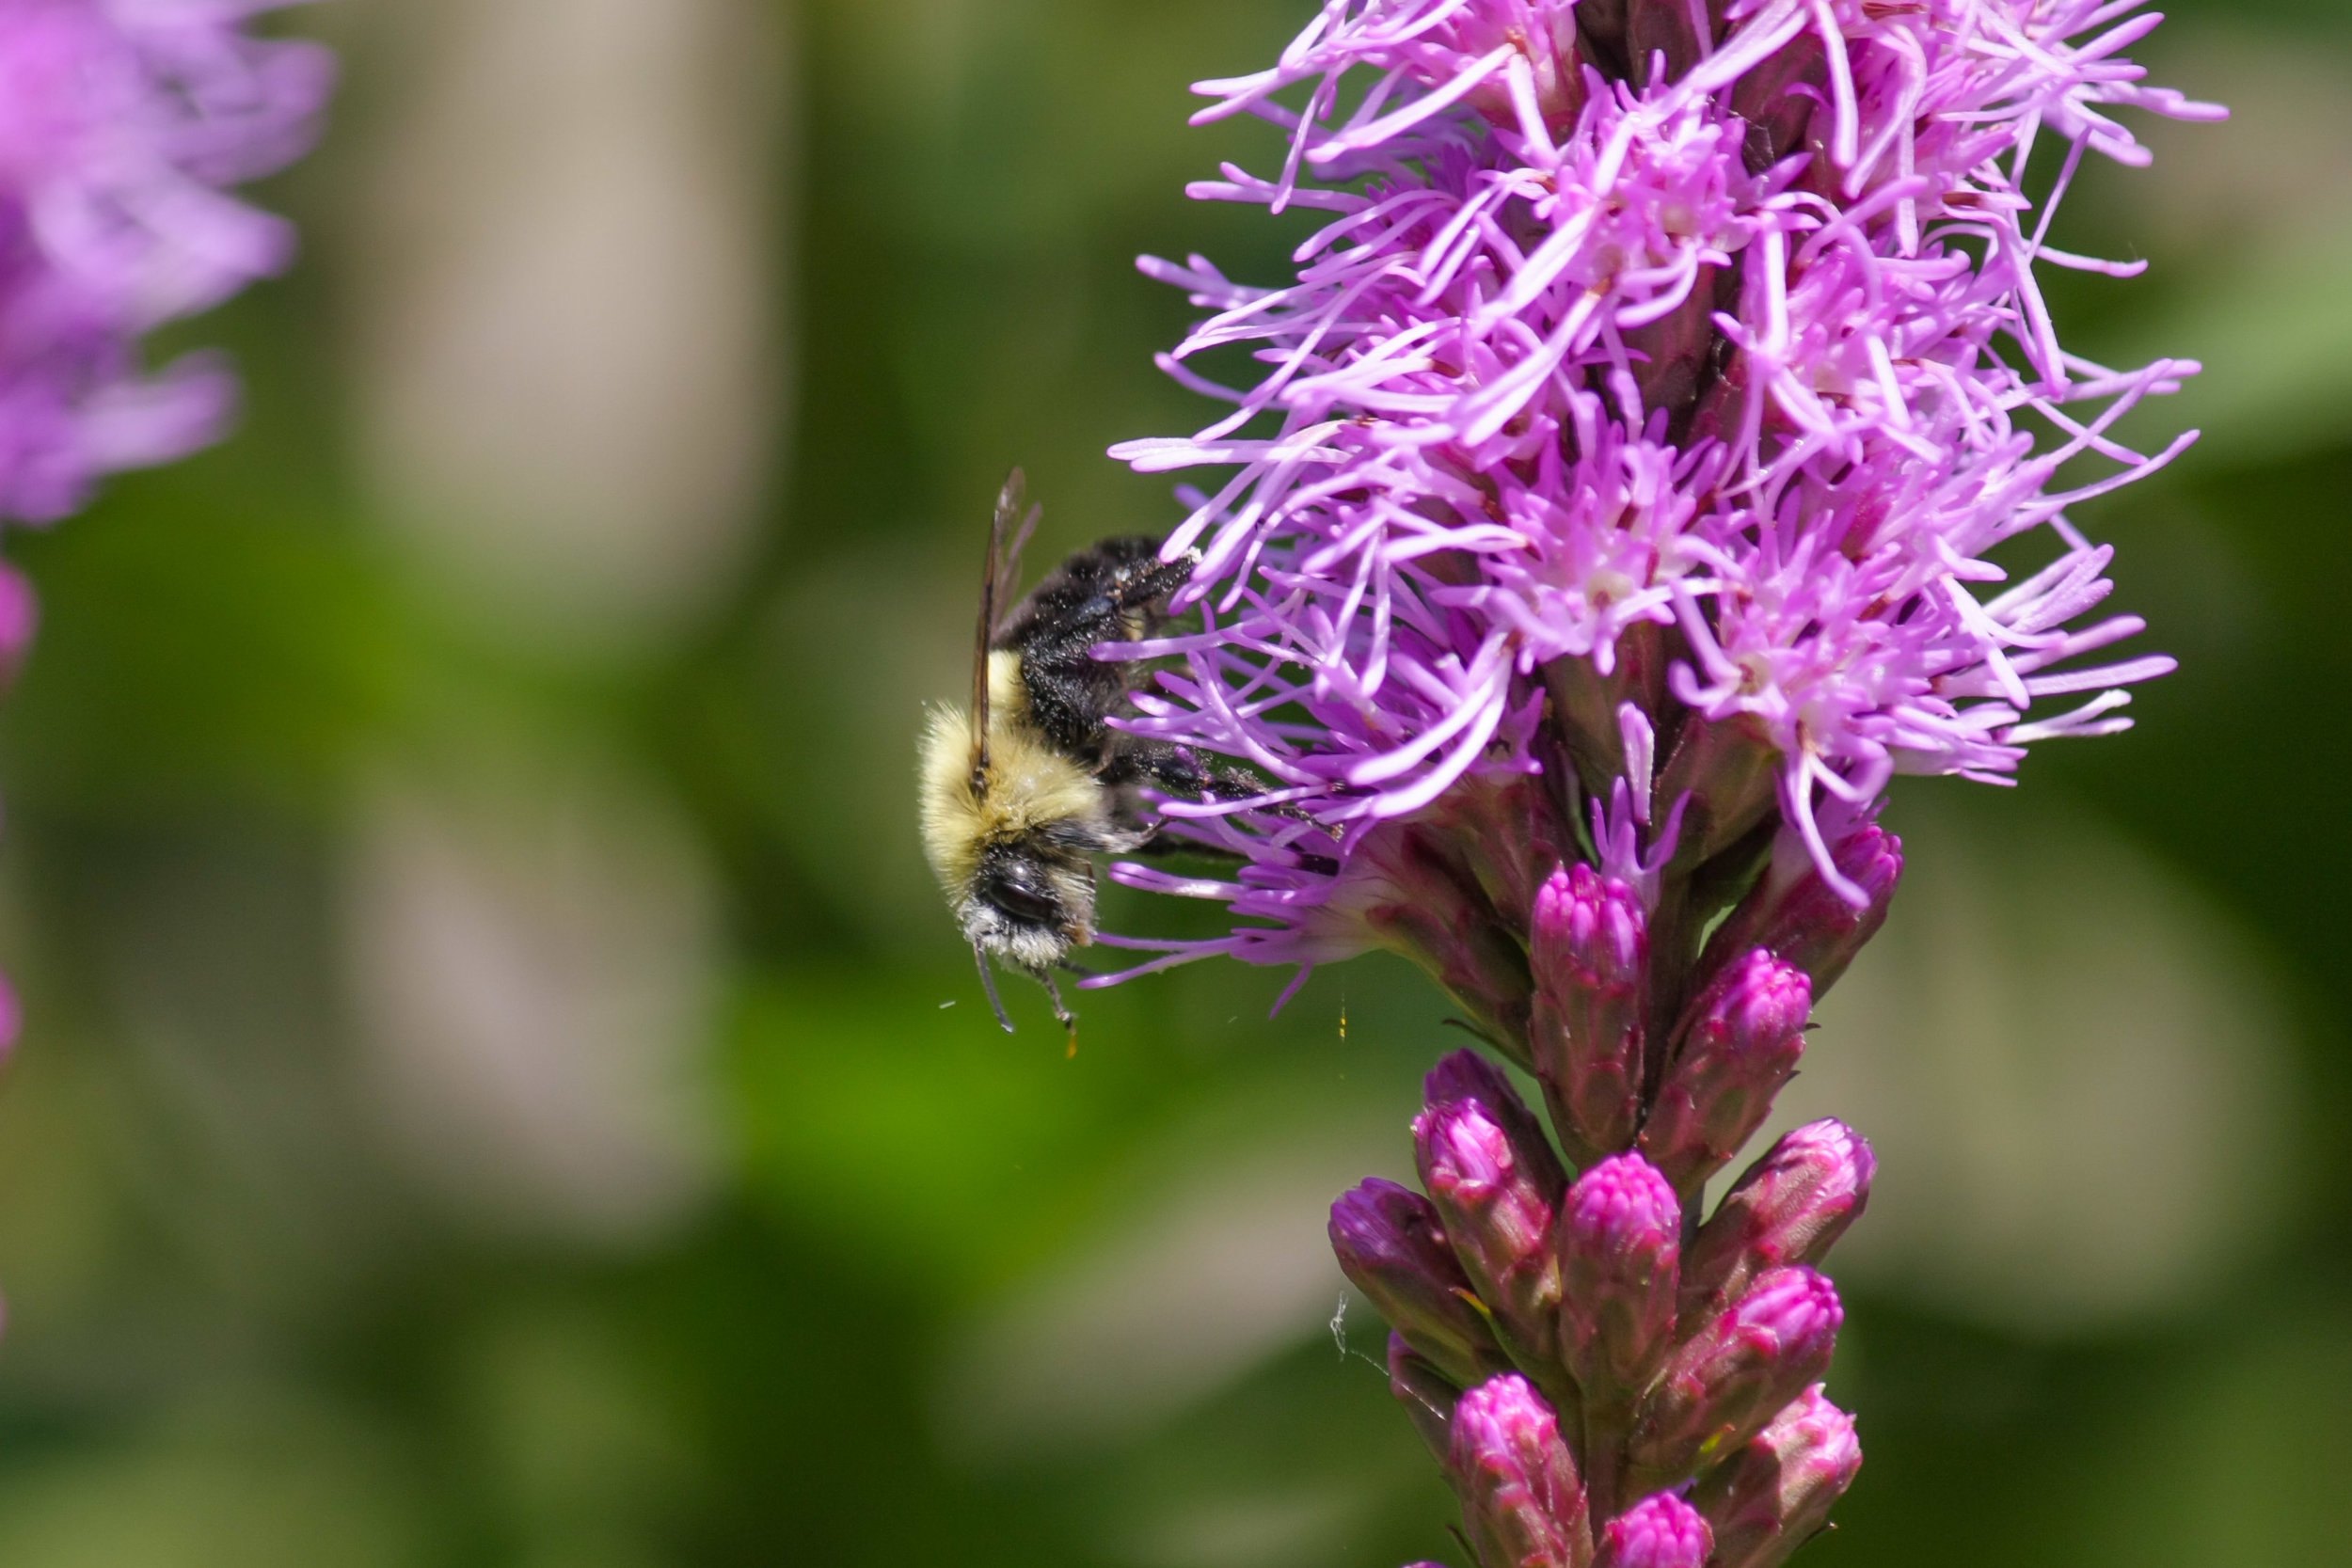 Gardening for pollinators is easy and highly rewarding